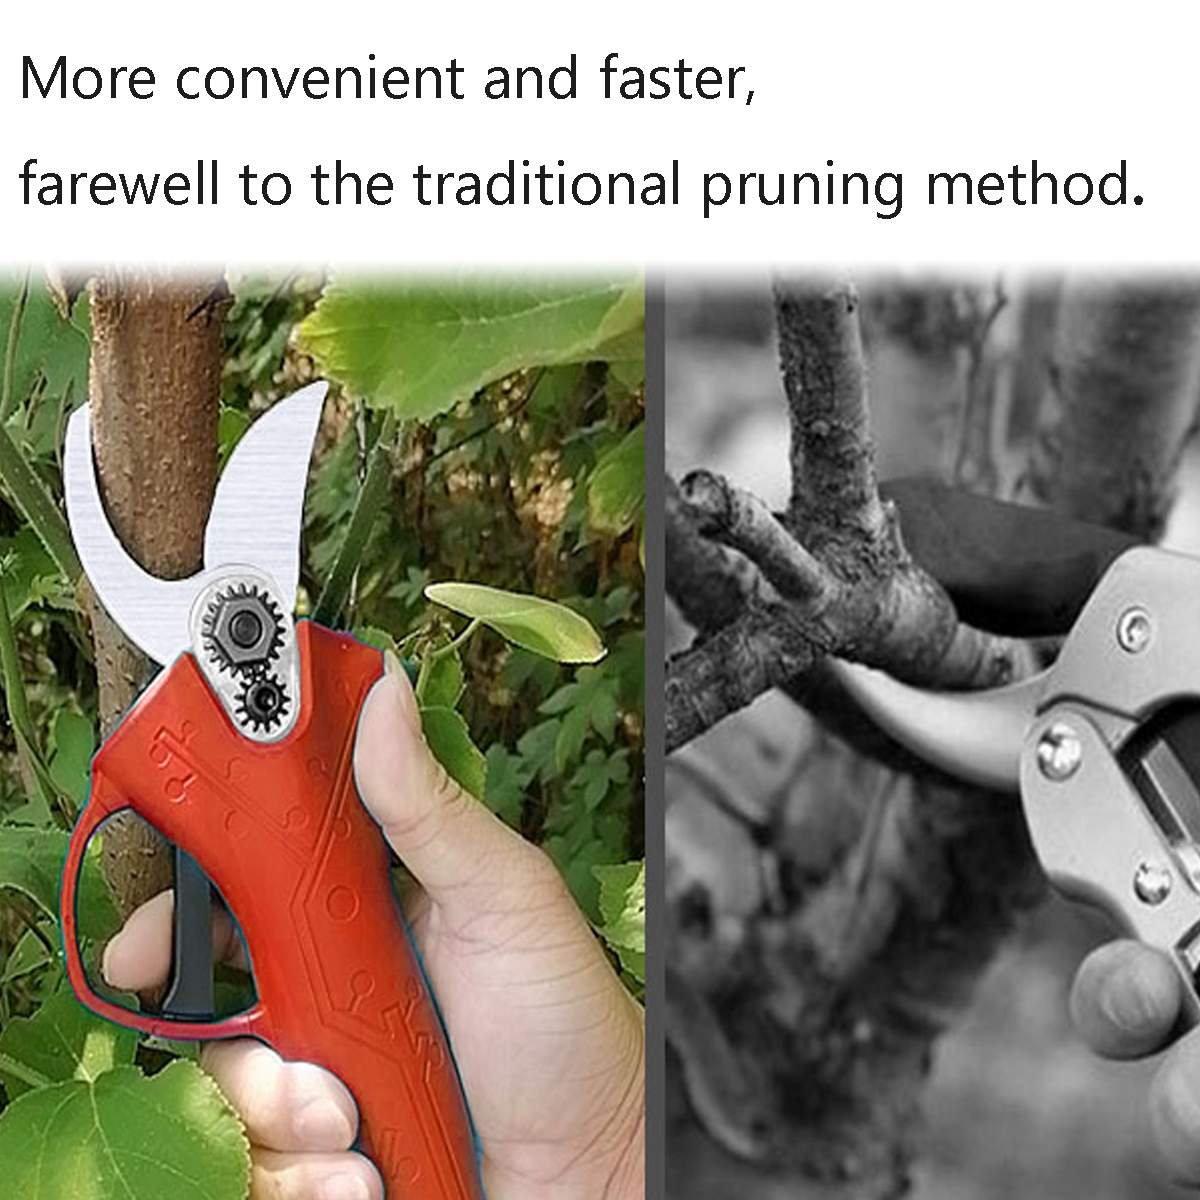 Branch Tree Bonsai Tool Cordless For 18V Cutter Shears Power Pruning Pruning Makita Fruit Battery Electric Pruner 1PC Efficient